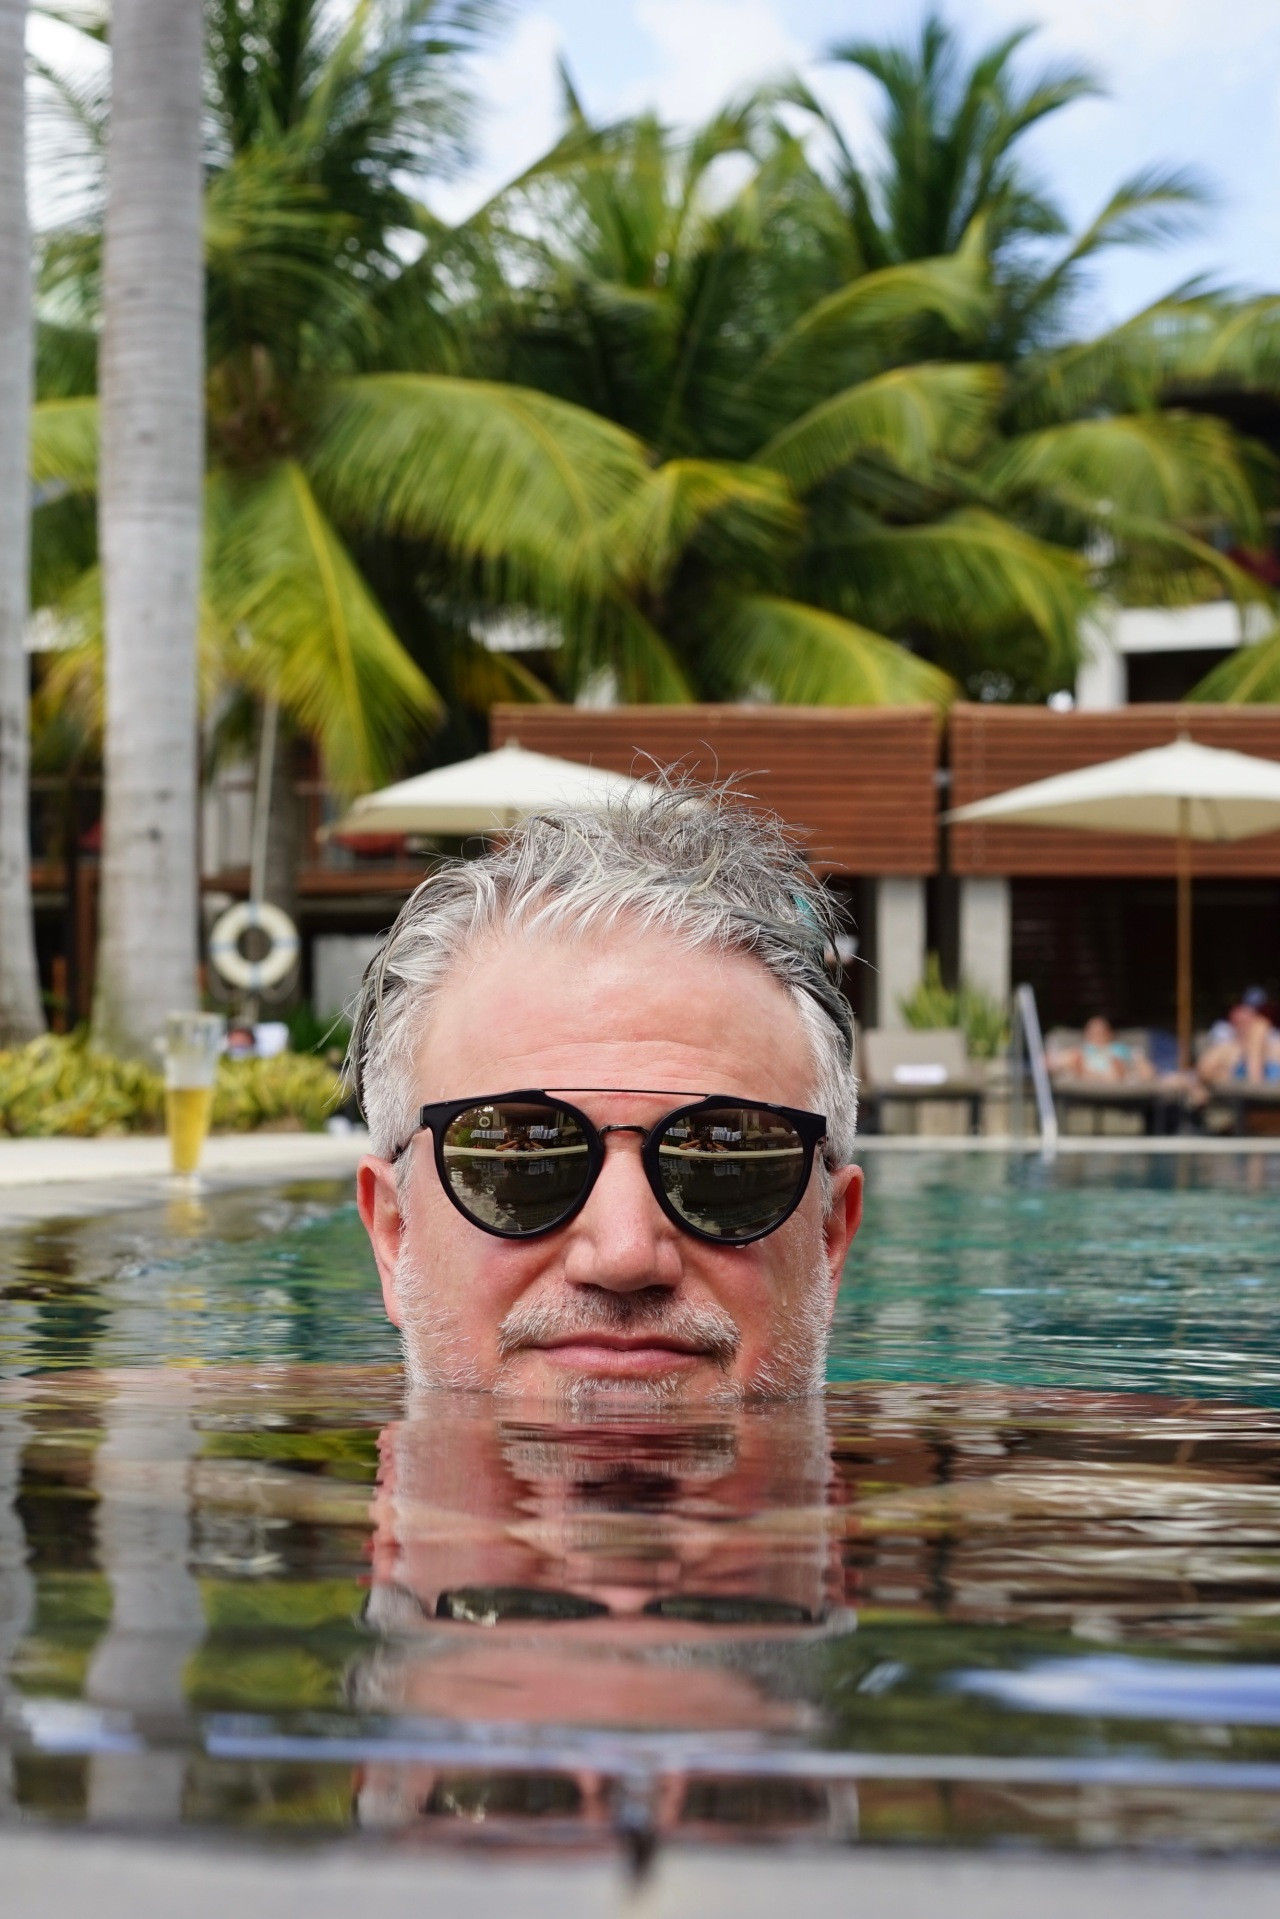 Jon-in-pool